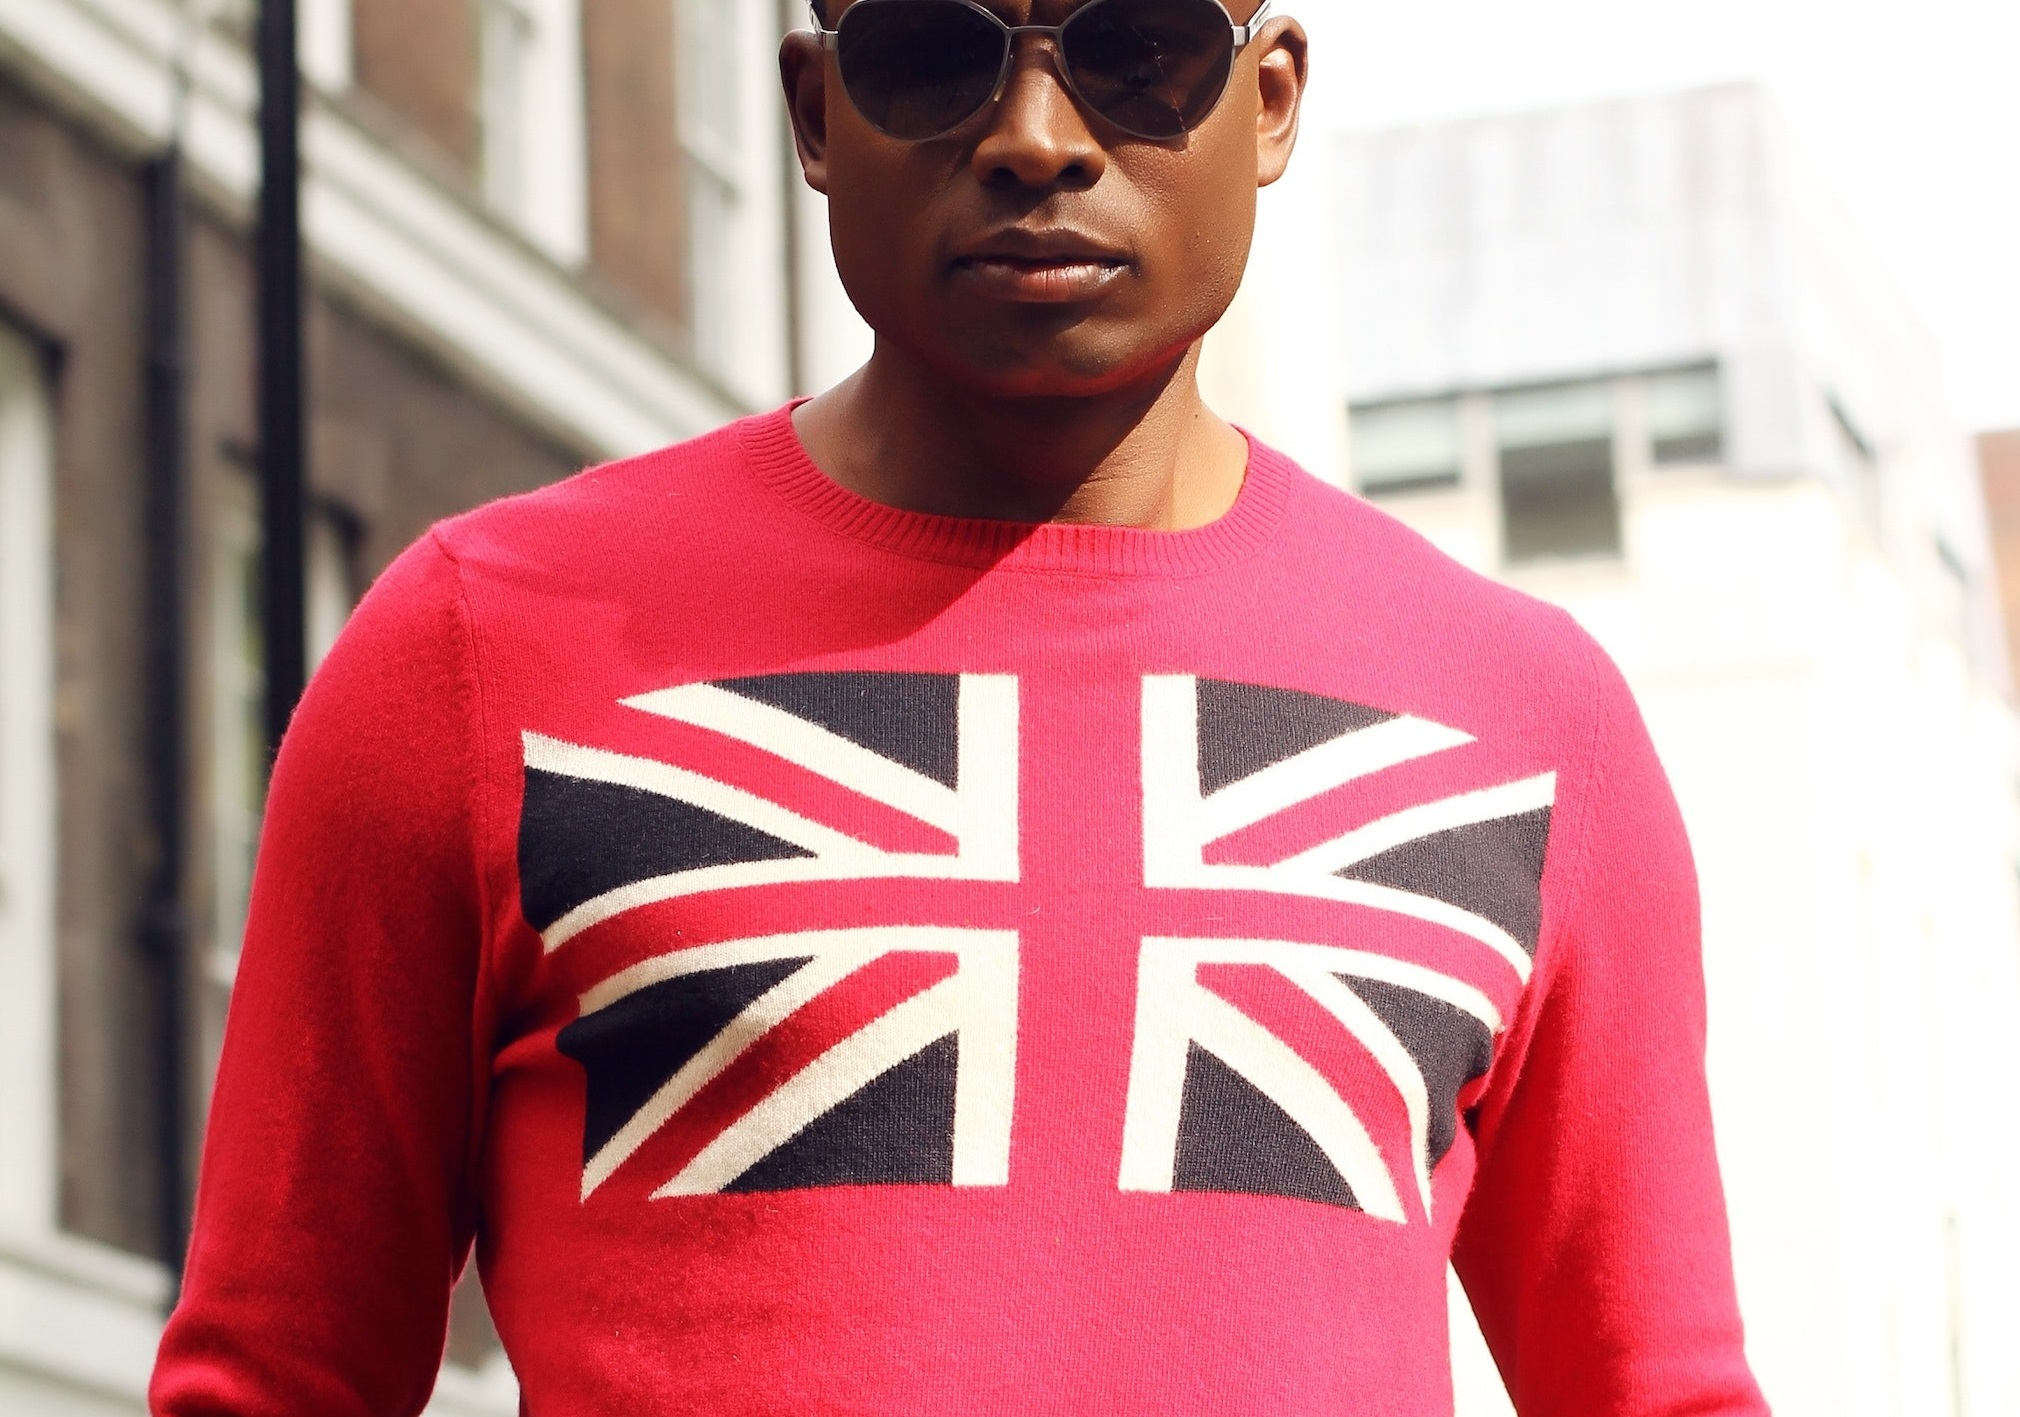 man wearing red top with union jack